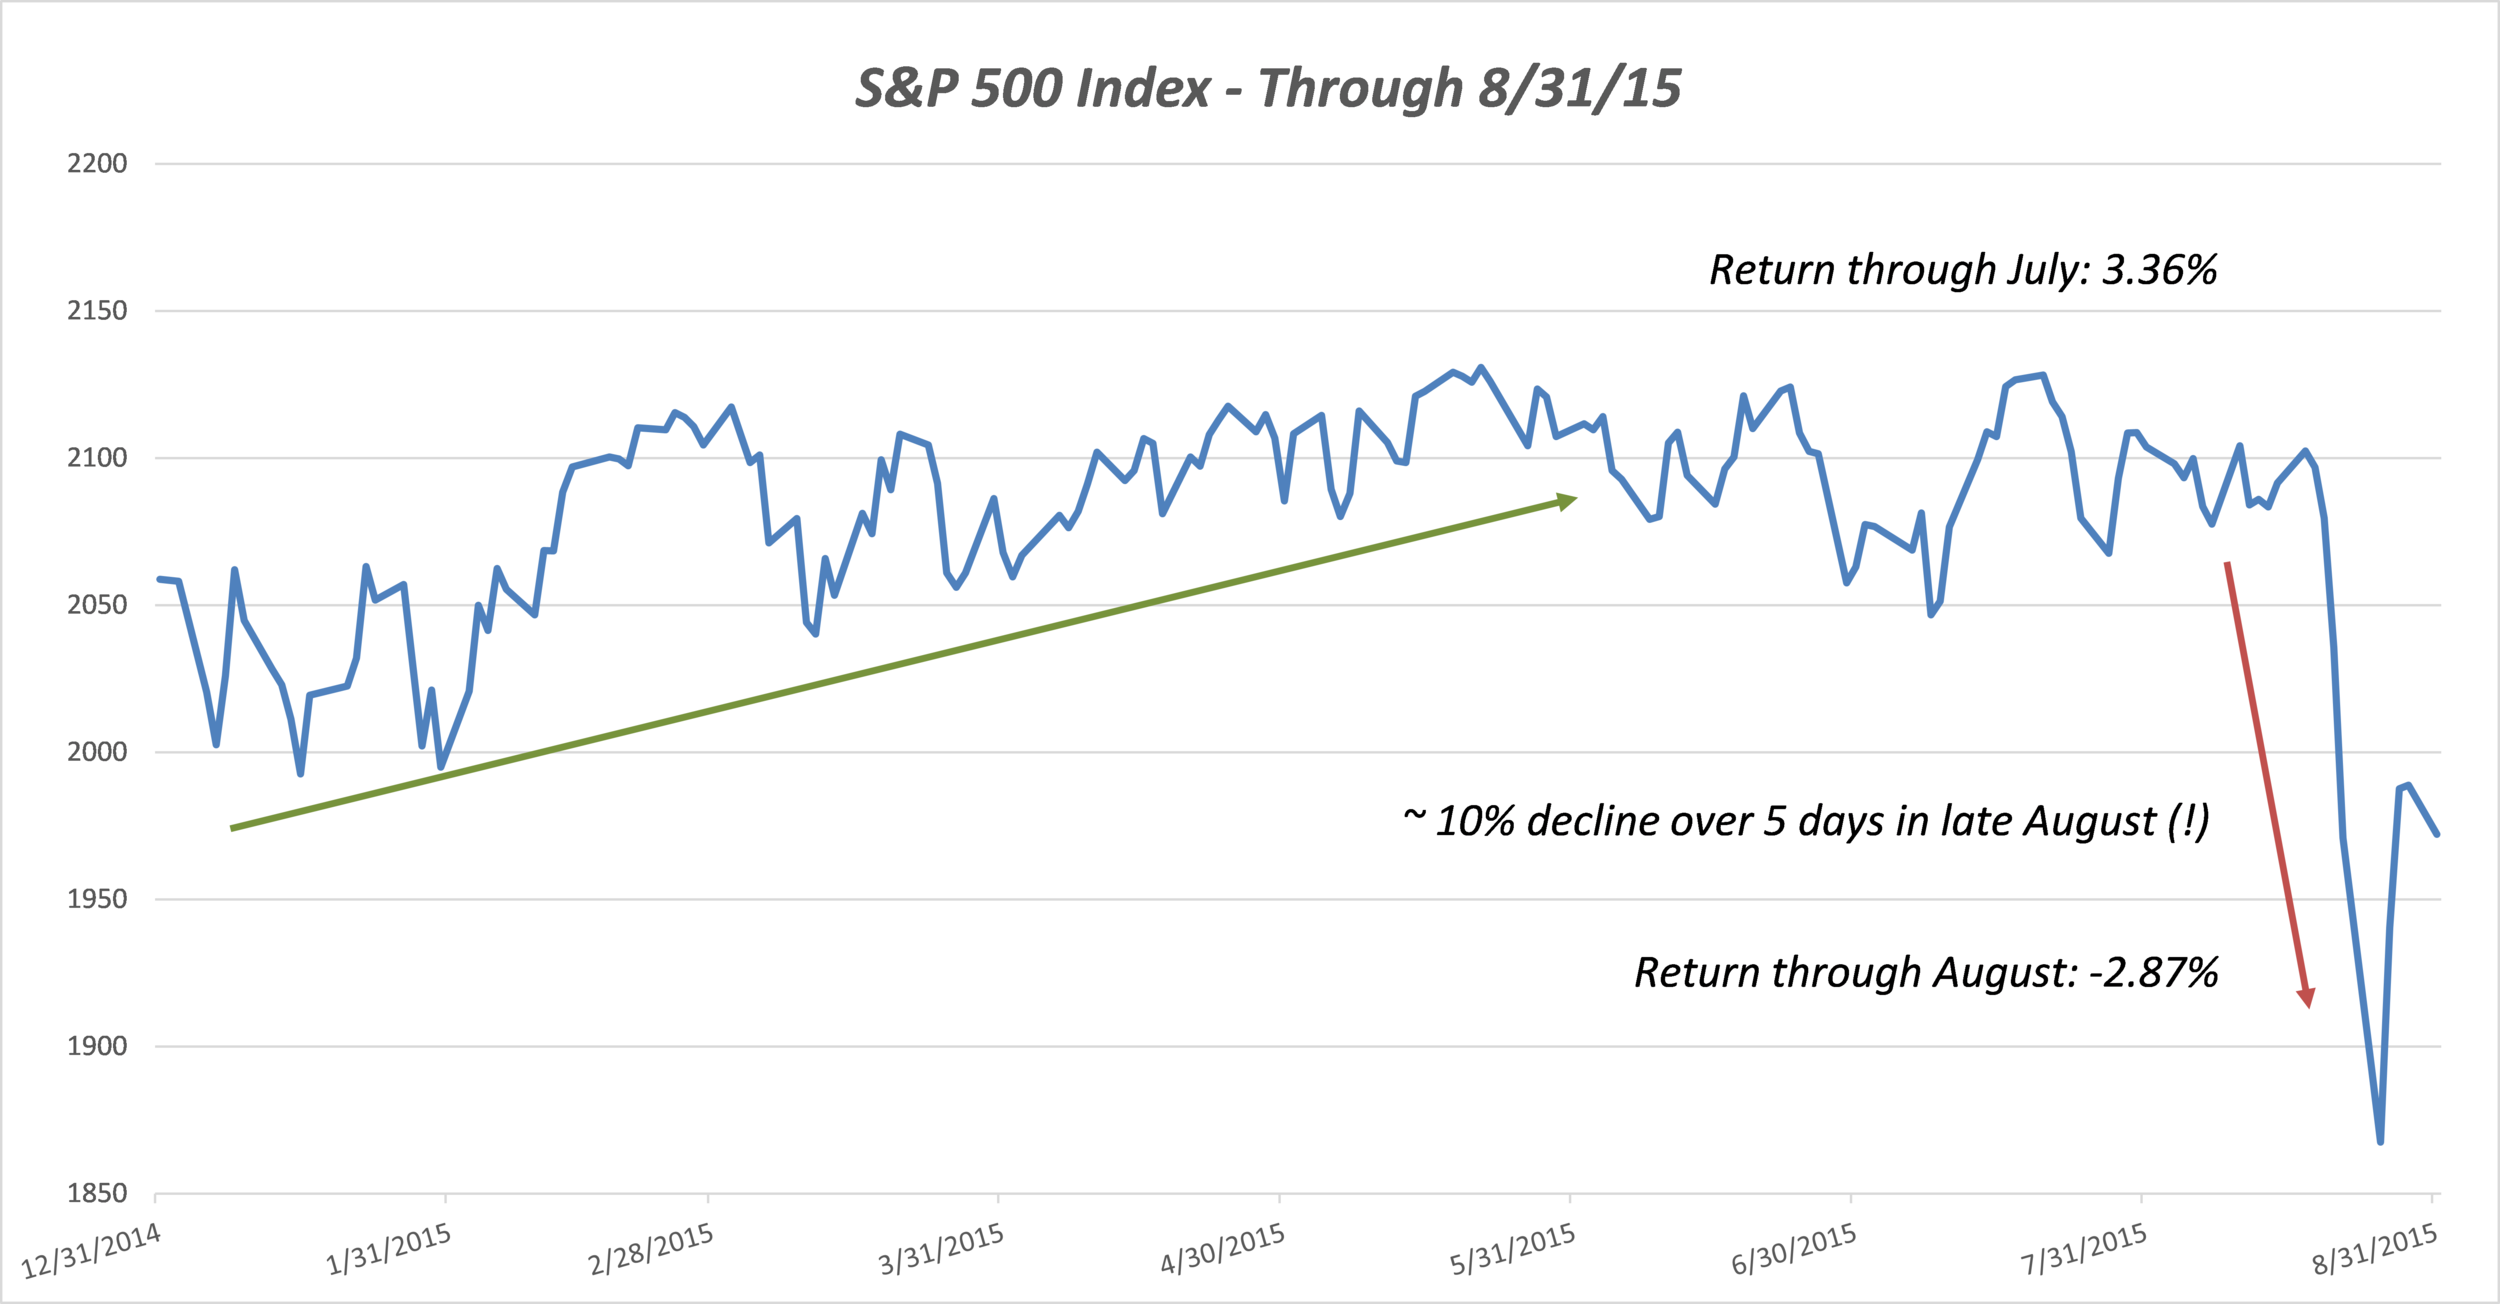 *Data from FactSet